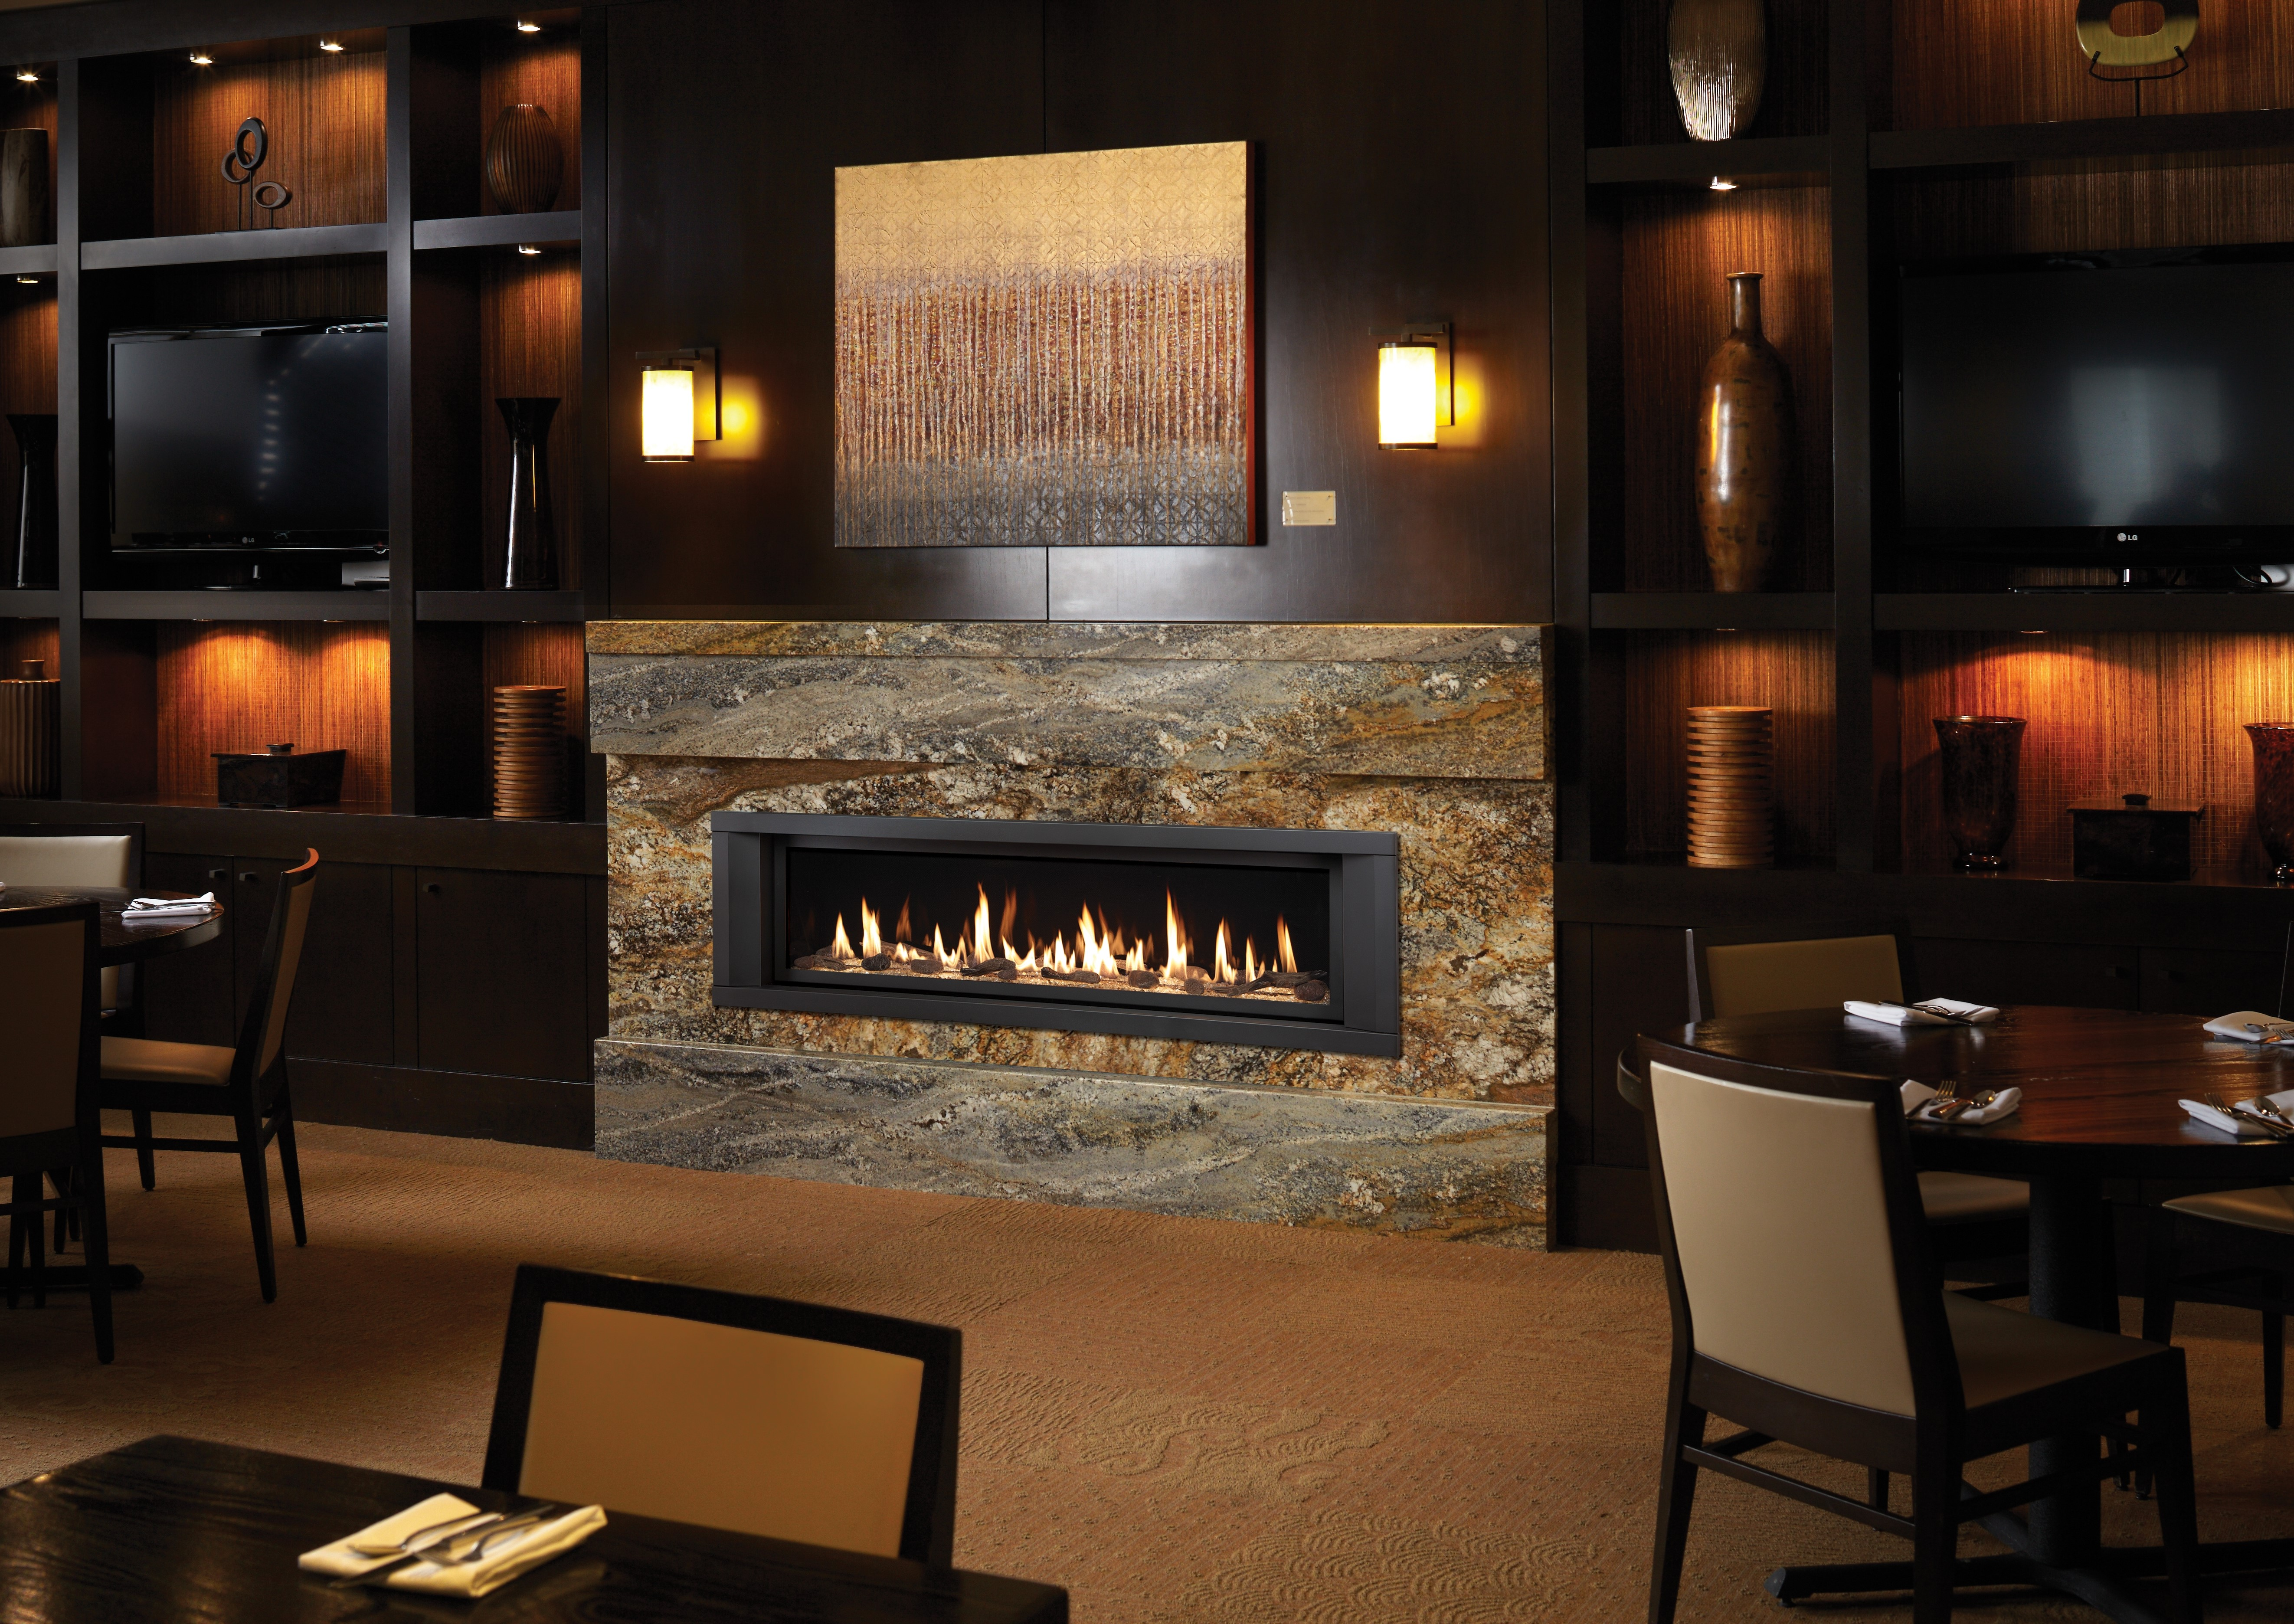 Another Image of the modern 6015 HO gas fireplace made by Fireplace Xtordinair featuring a modern linear design.